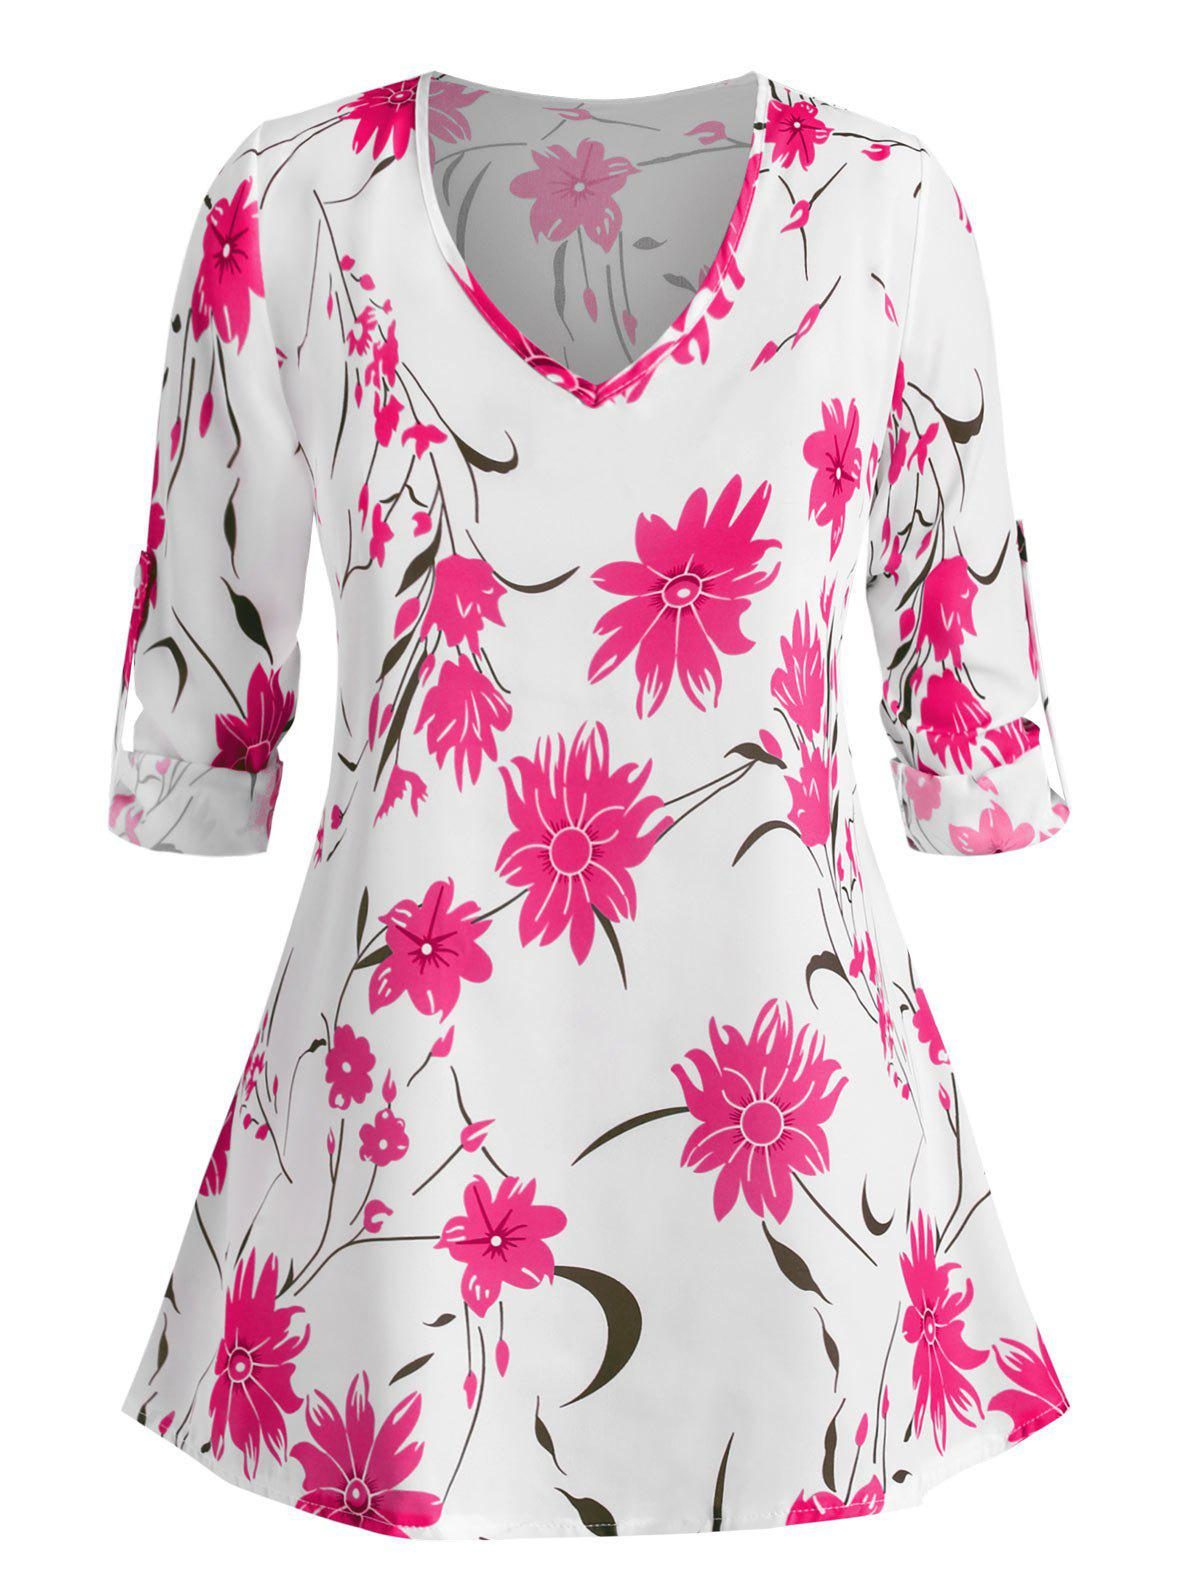 Plus Size Roll Up Sleeve Floral Printed Blouse - LIGHT PINK 2XL